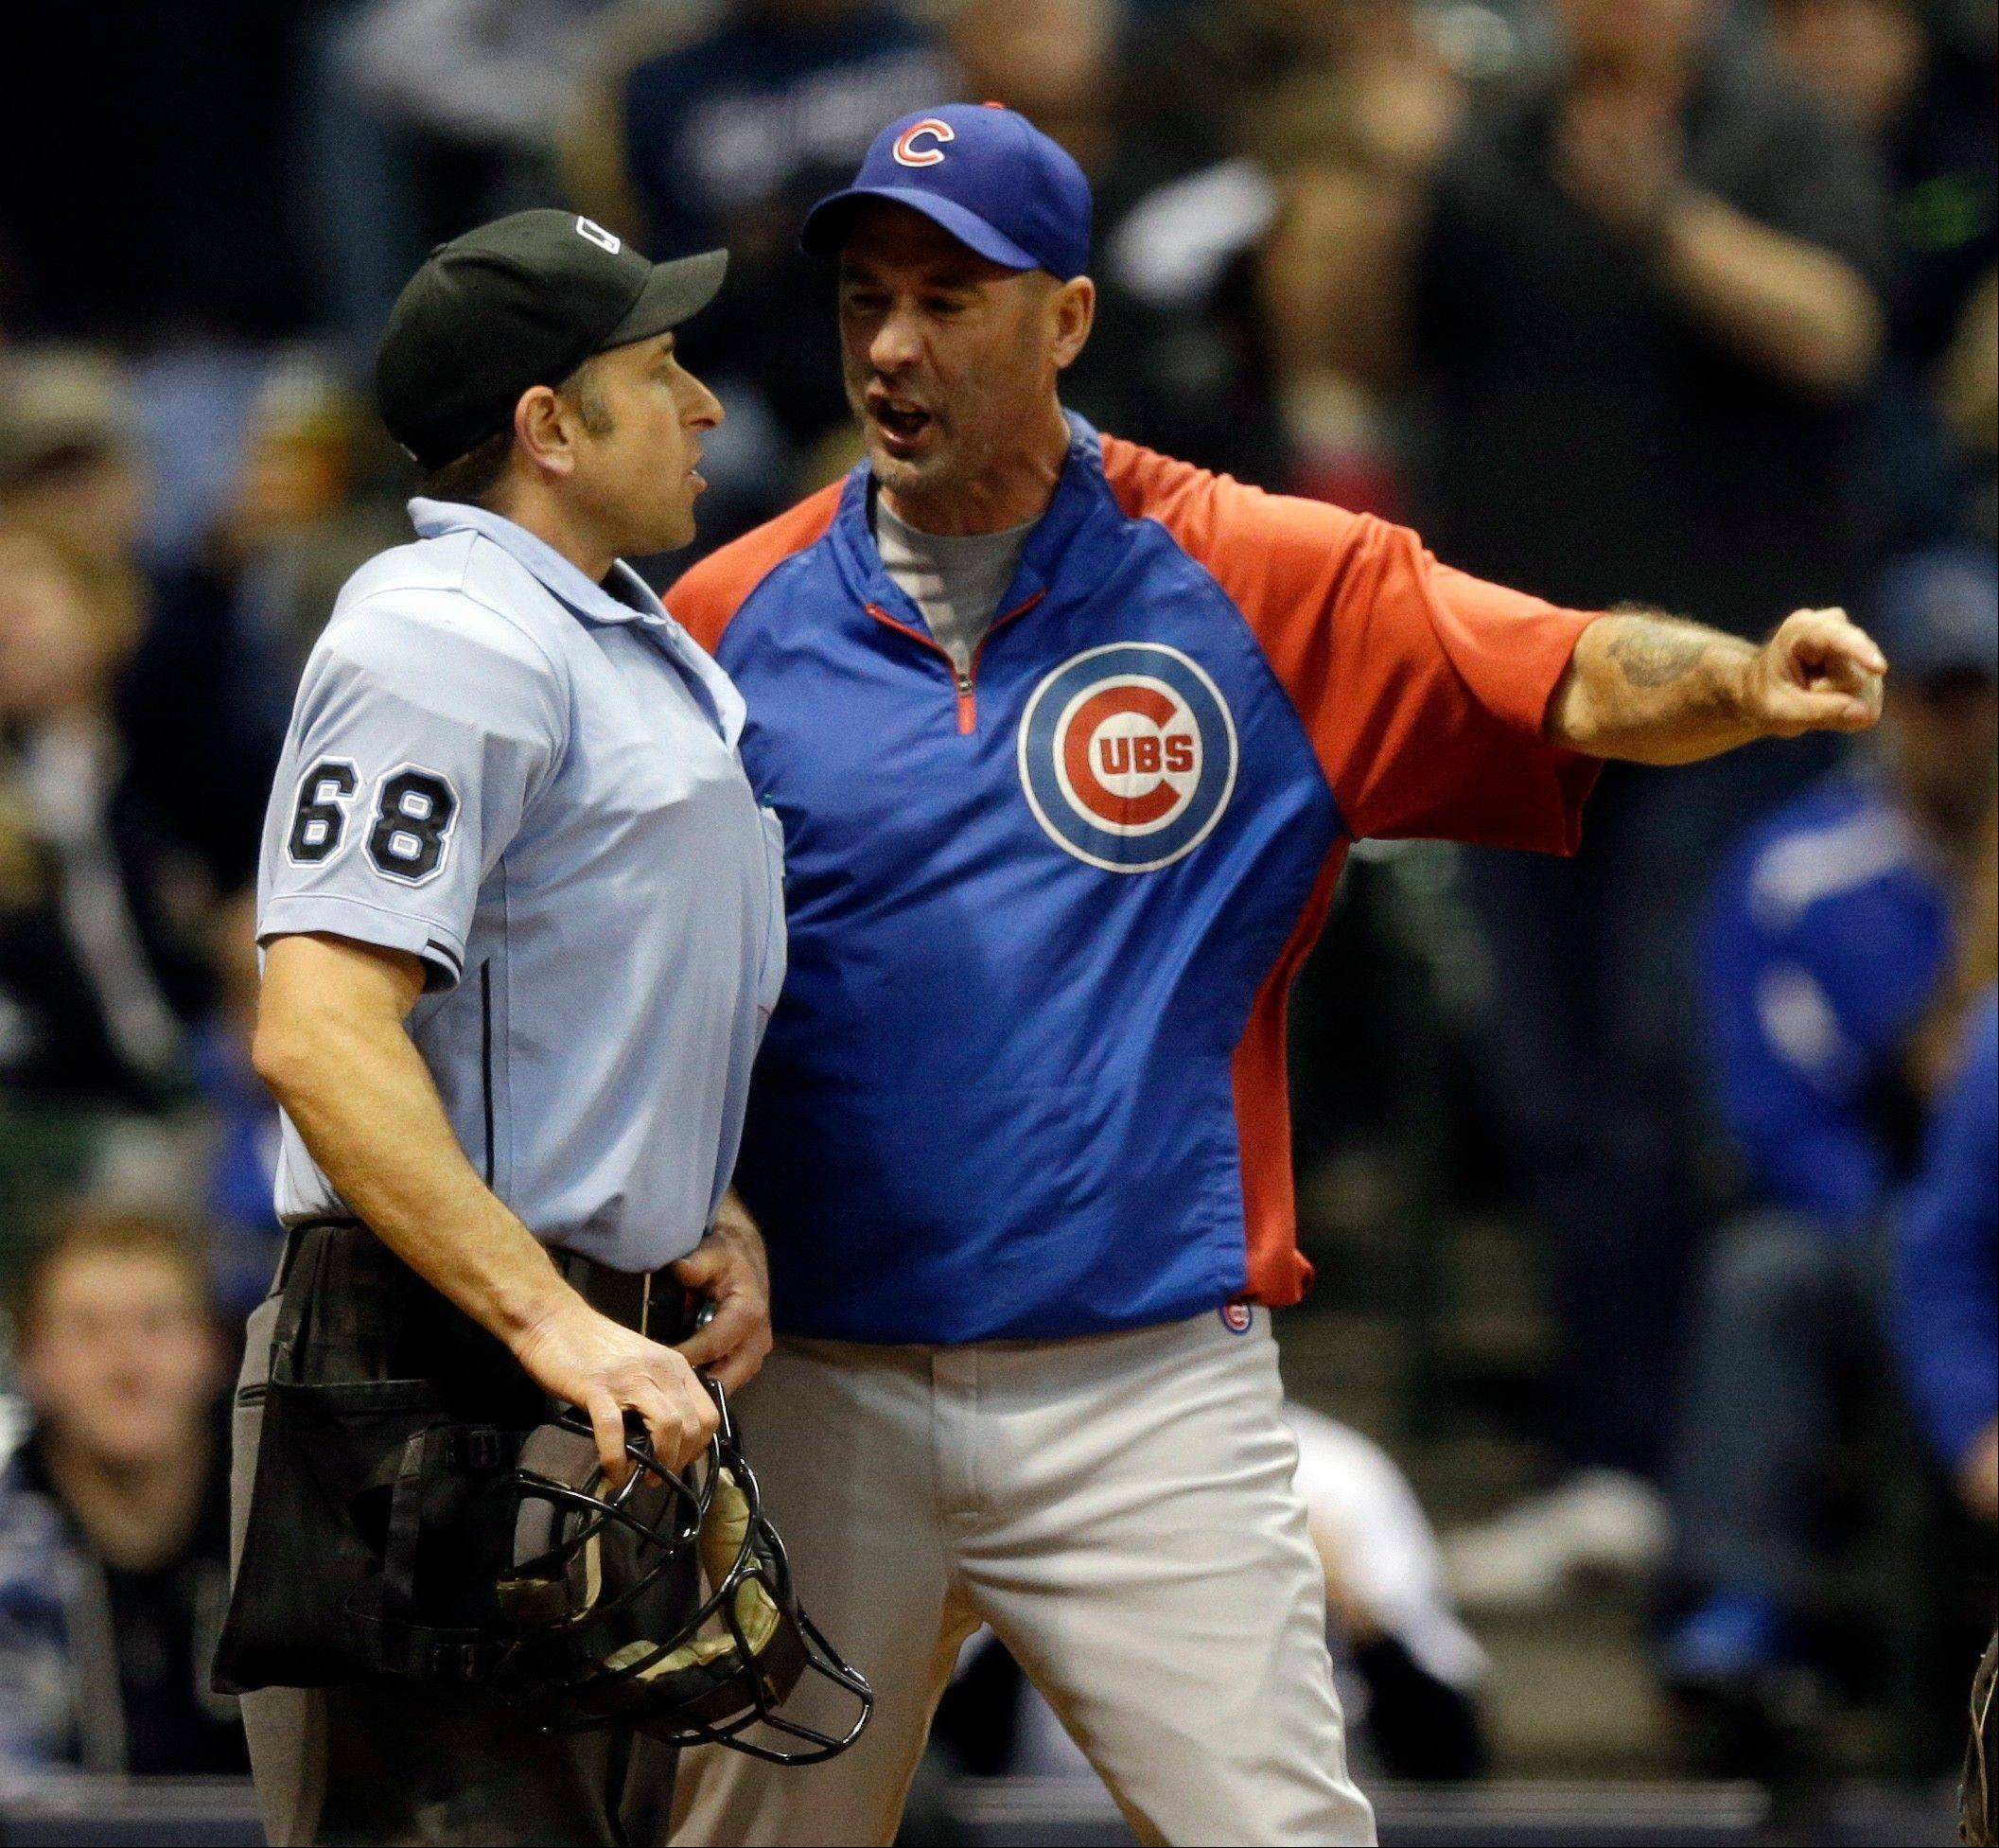 Chicago Cubs manager Dale Sveum argues with home plate umpire Chris Guccione during the sixth inning of Friday�s road game against the Milwaukee Brewers. Sveum was ejected from the game.